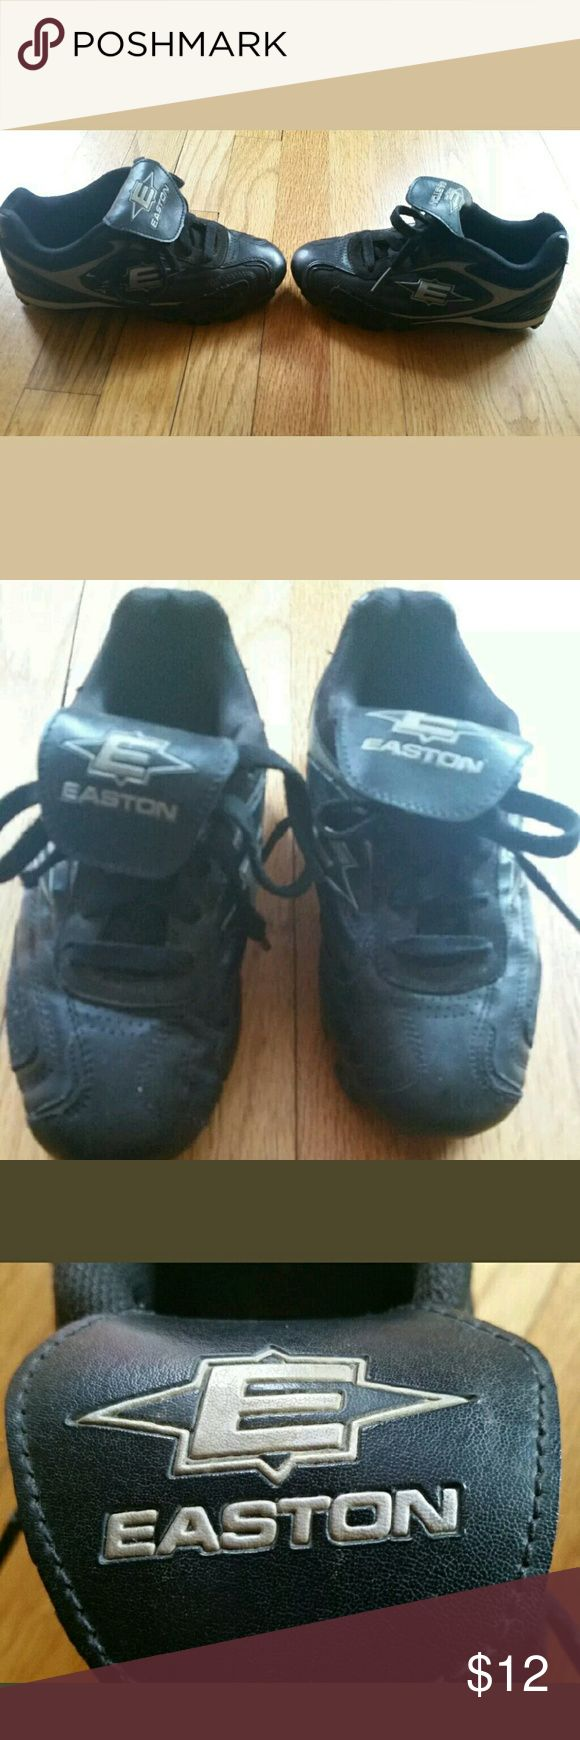 SUMMER SALE  EASTON CLEATS YOUTH SIZE 2.5 EASTON Youth Cleats Size 2.5 Baseball/ Softball Black,very good pre-owned condition,smoke-free home EASTON  Shoes